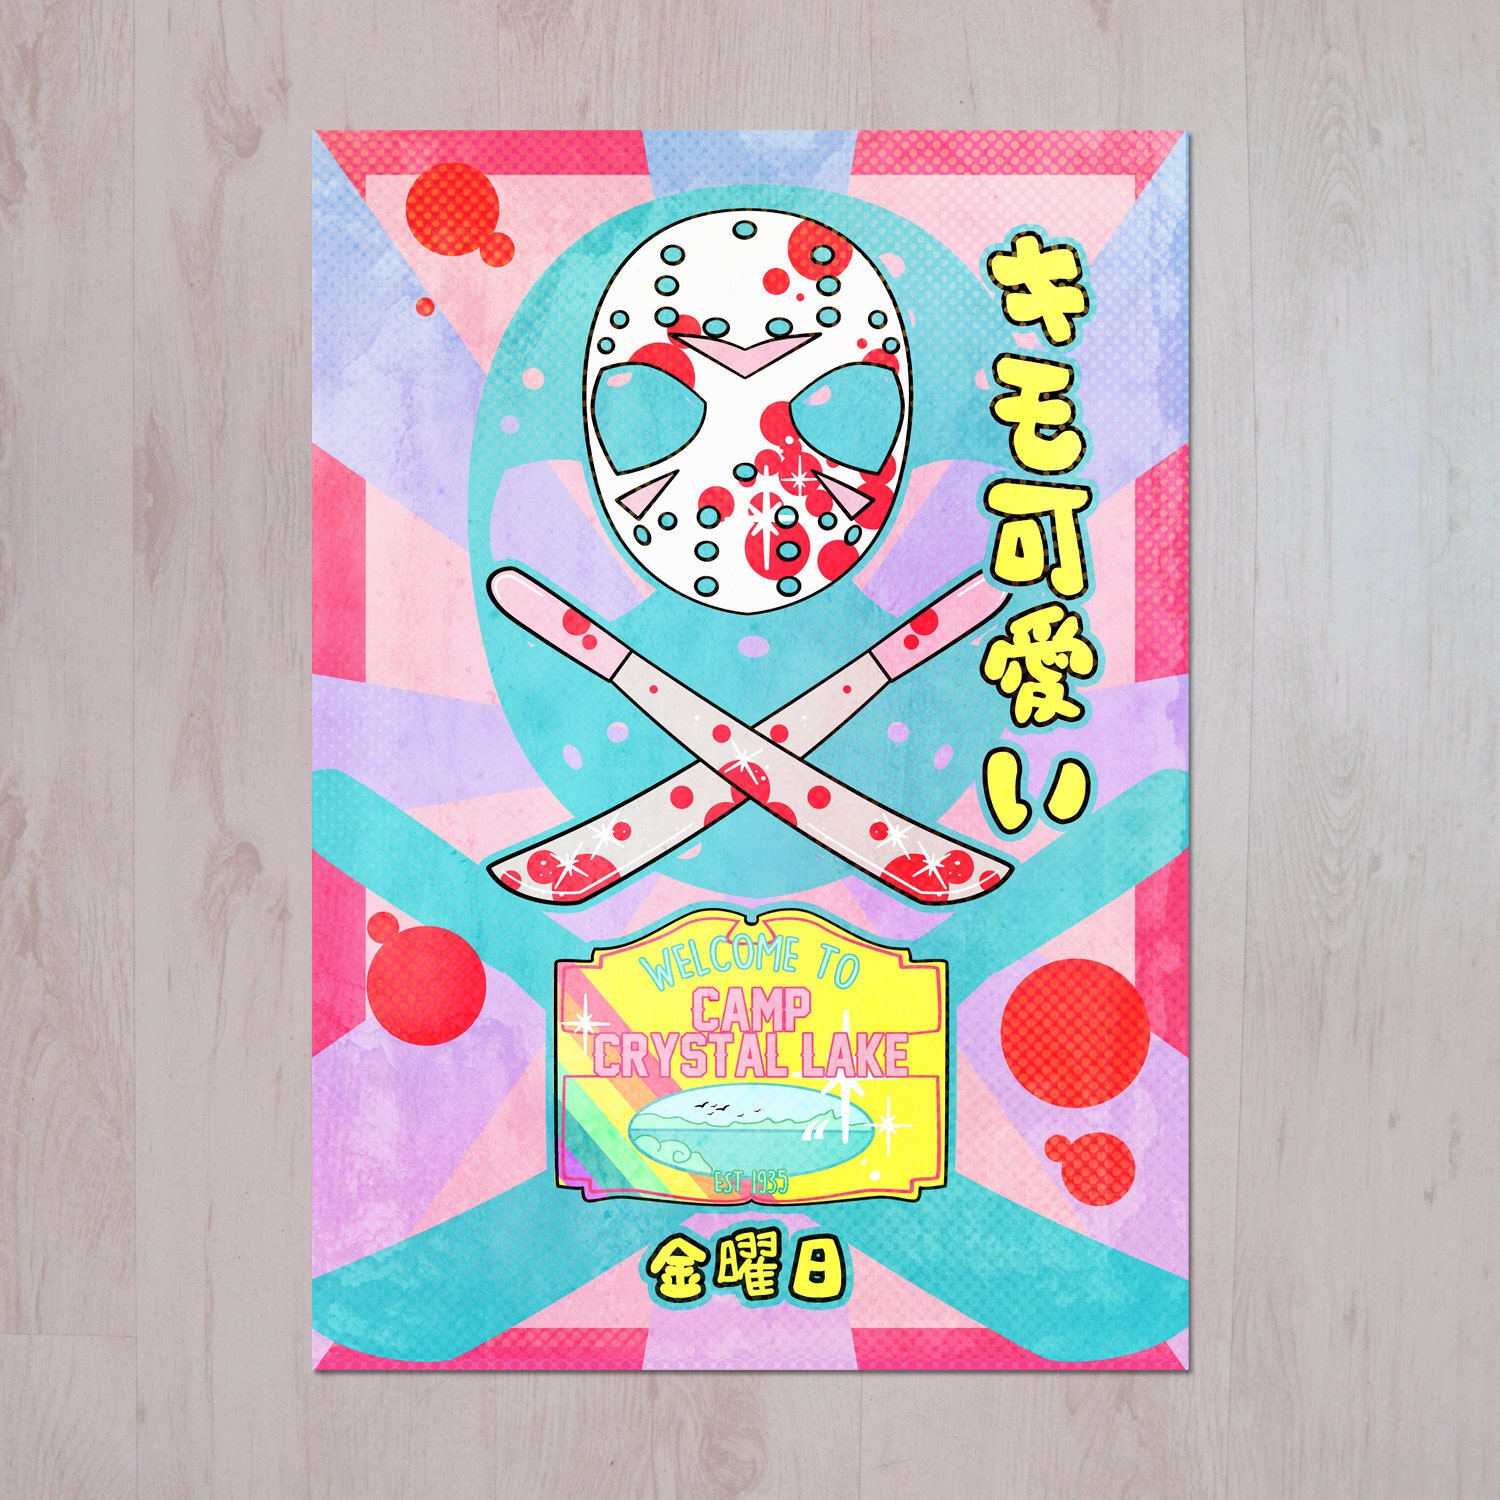 Kawaii Friday the 13th Poster